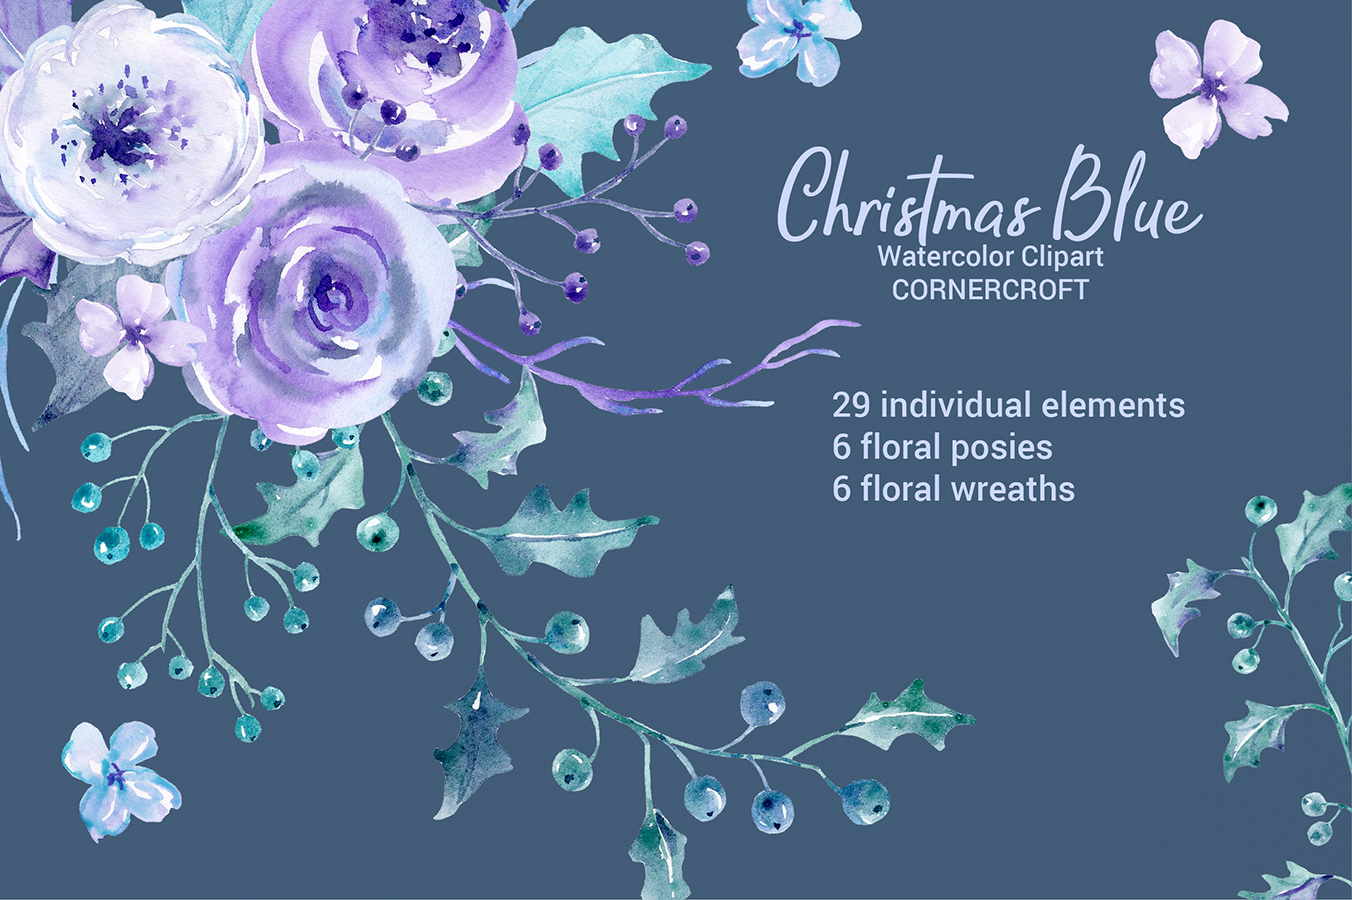 Watercolor Clip Art Christmas Blue example image 1